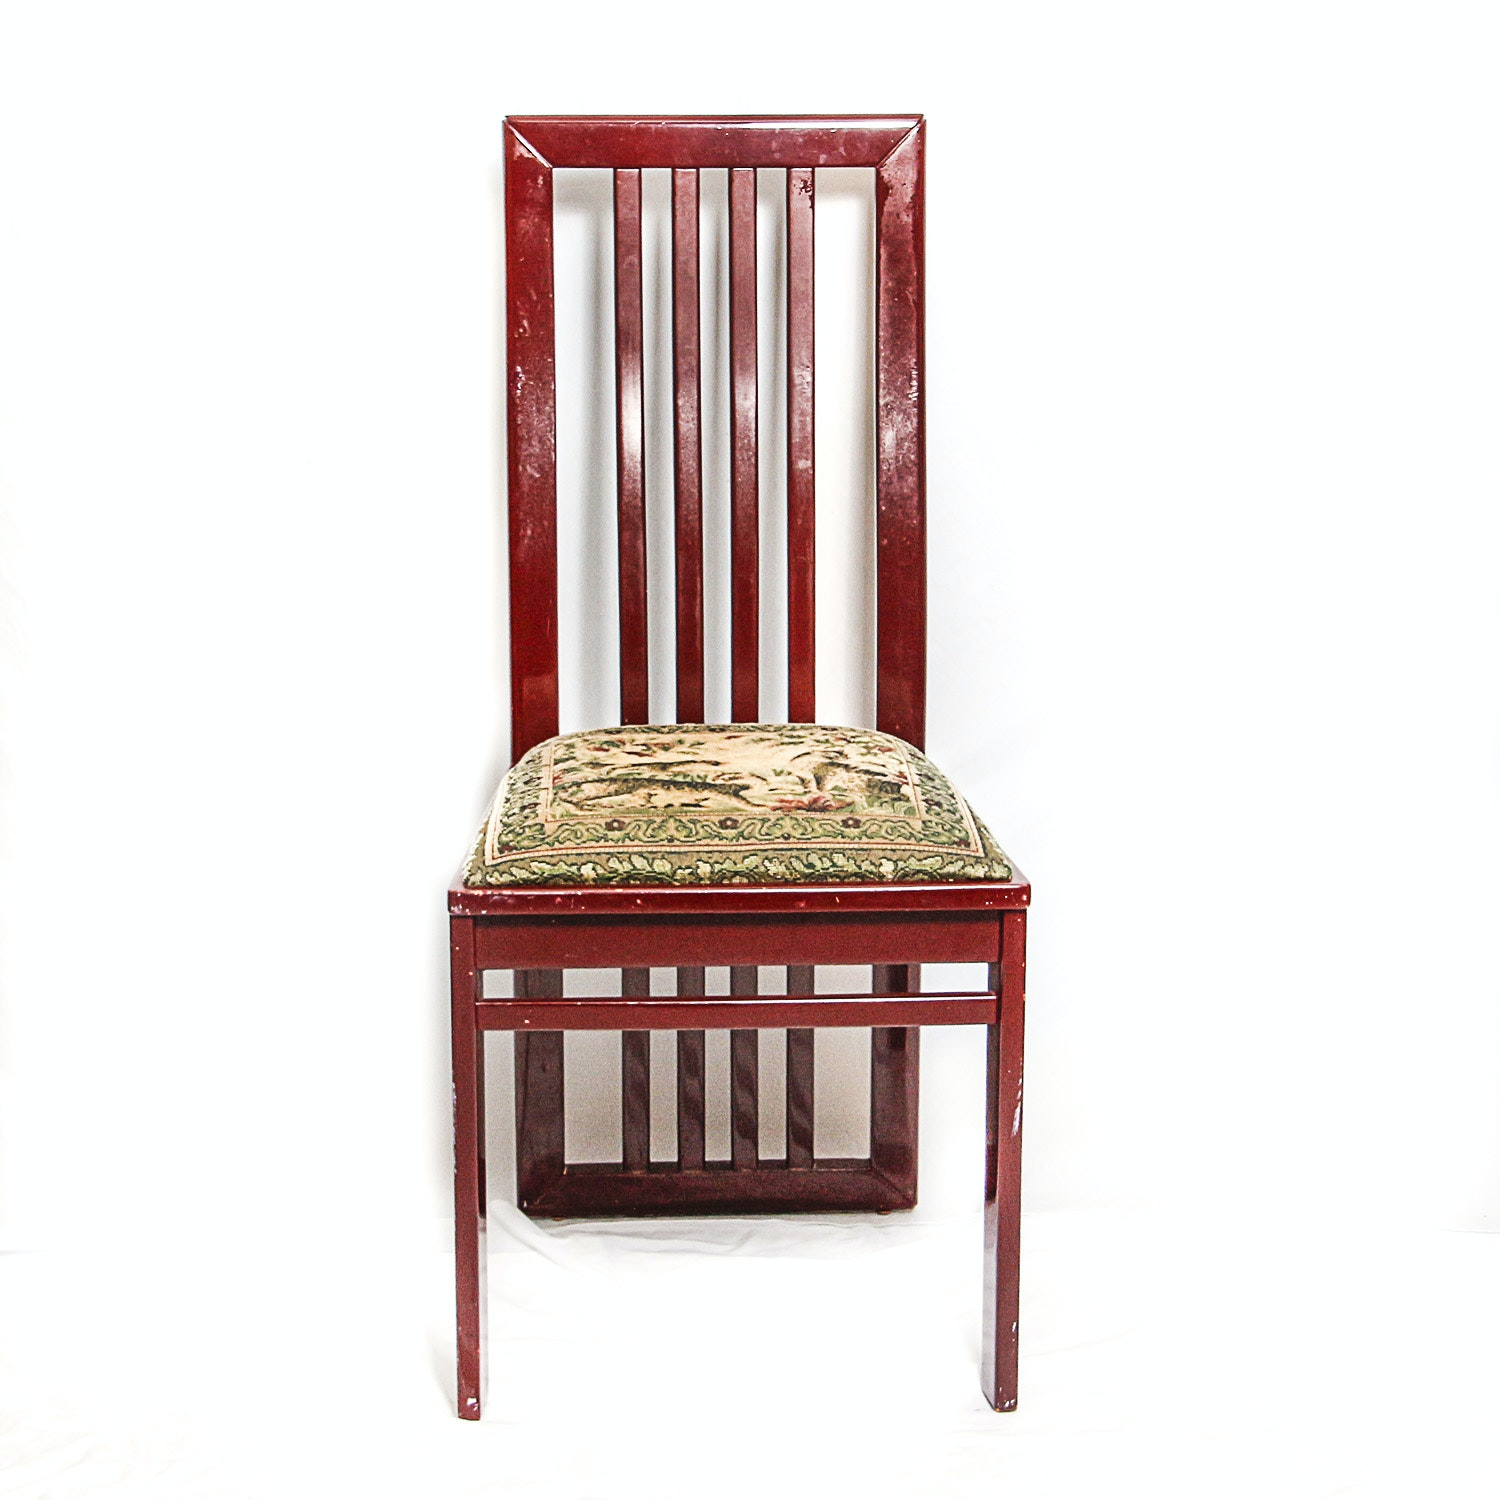 Wooden Chair with Upholstered Seat